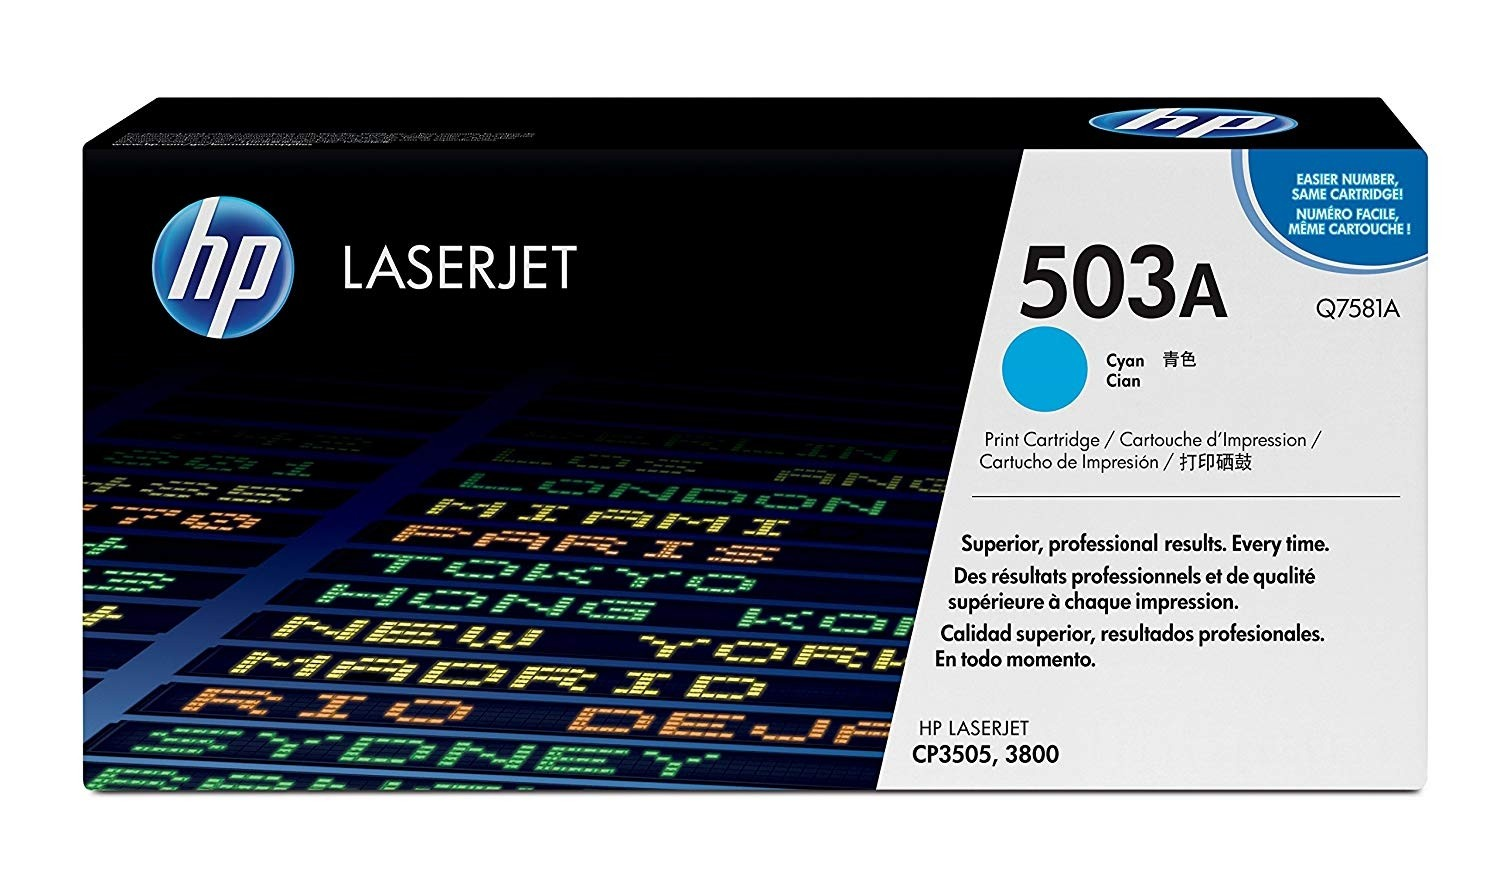 Genuine HP Q7581A Cyan Toner Cartridge (Q7581A)